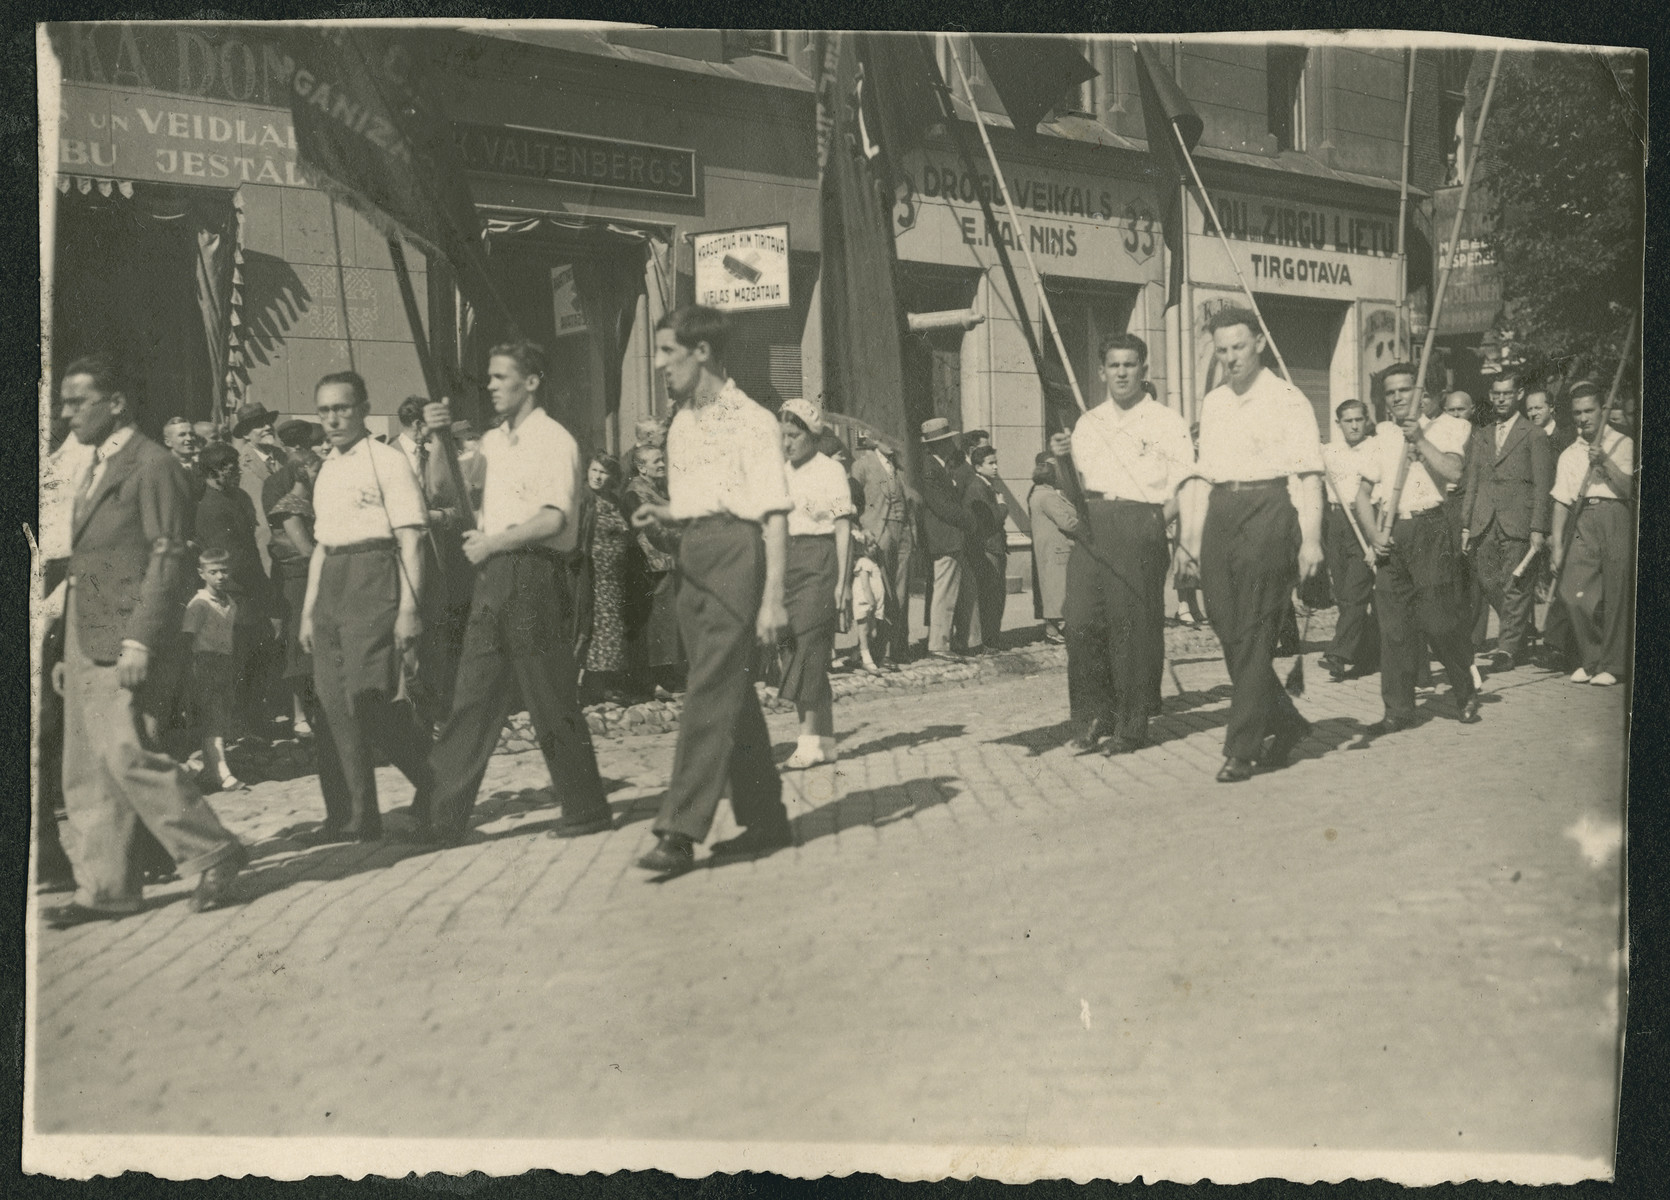 Zionists parade down a street probably during the 18th Zionist Congress..